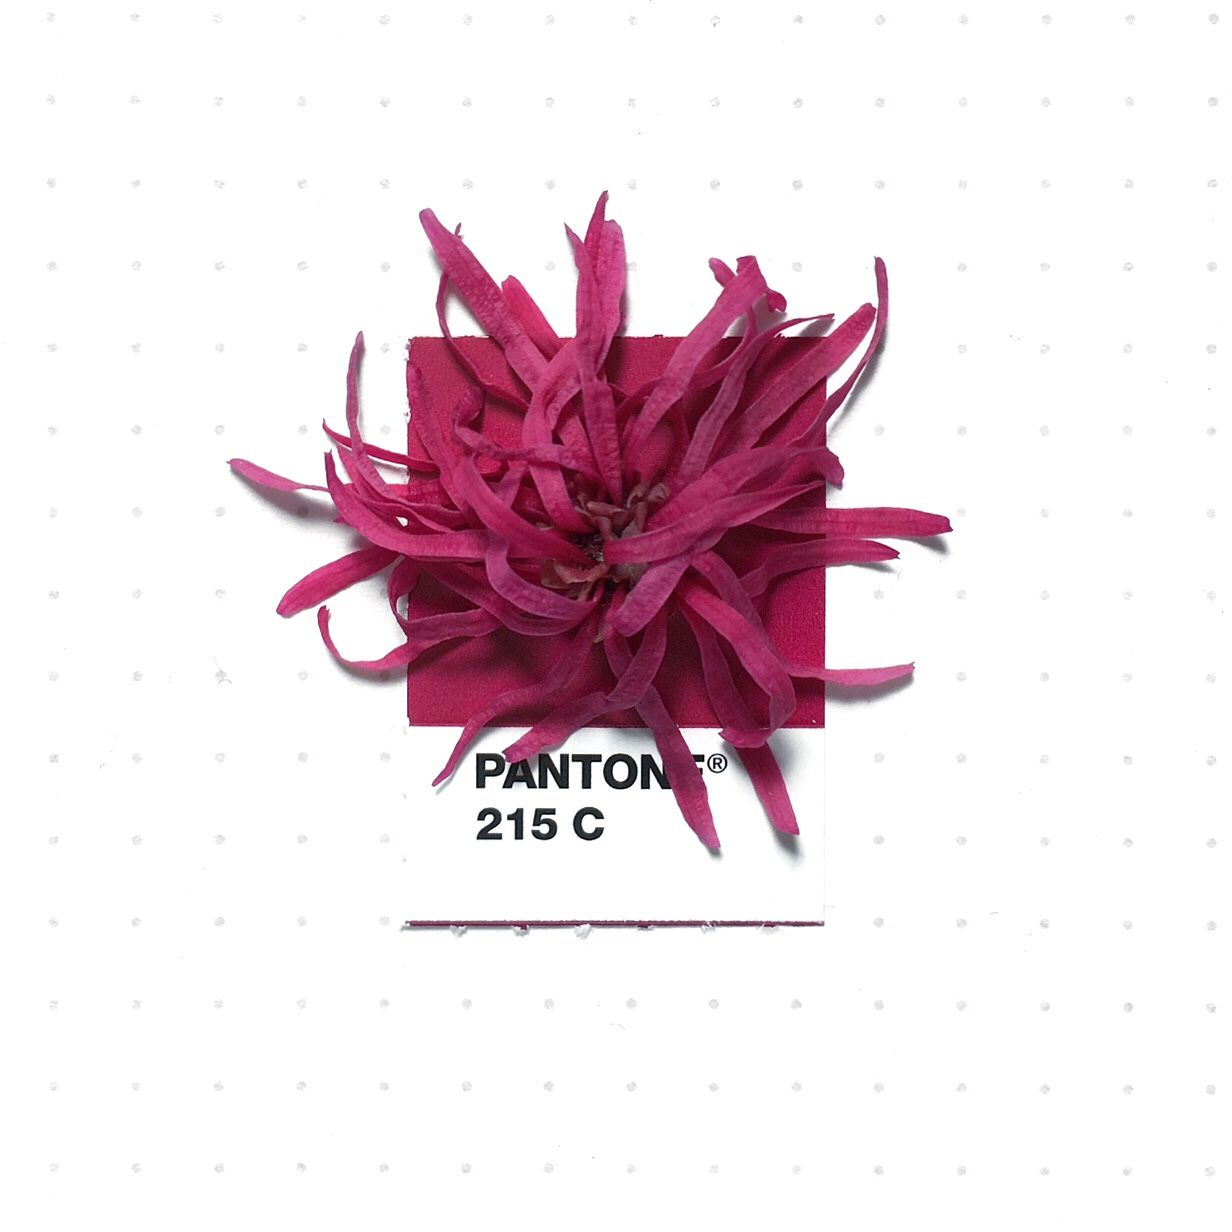 Pantone 215 color match. Chinese Fringe Flower (Loropetalum). The ...